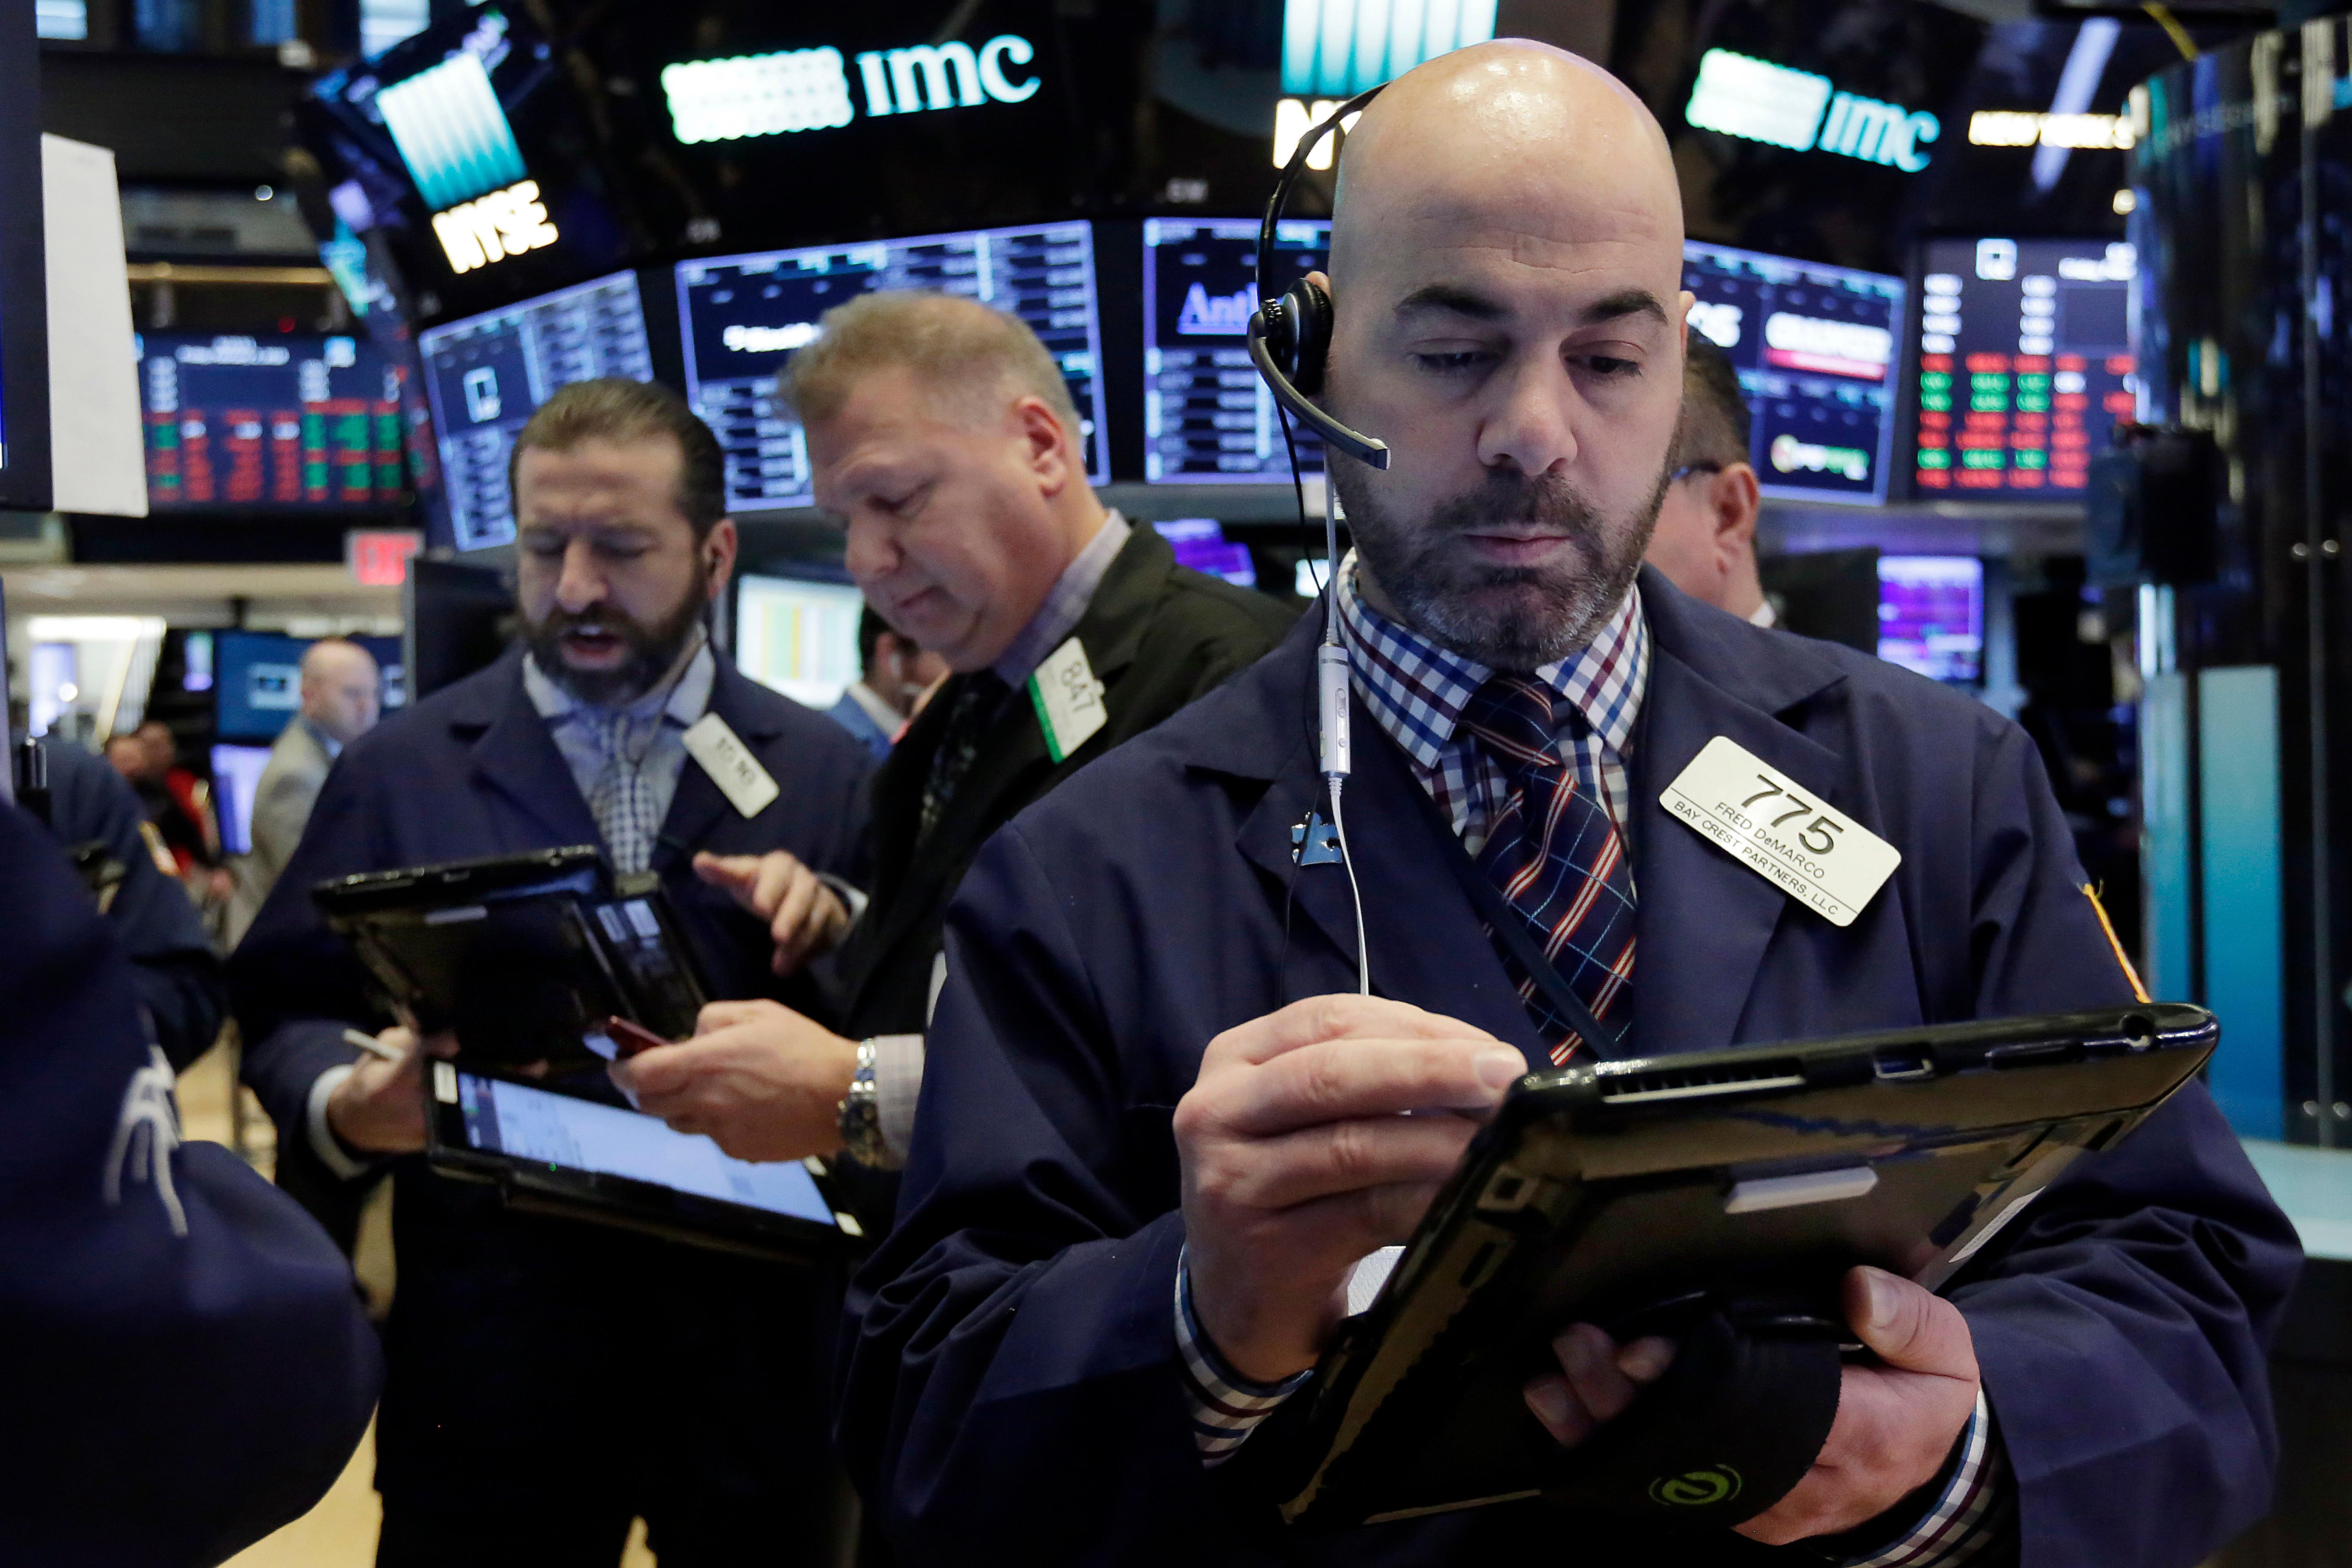 Fred DeMarco, right, works with fellow traders on the floor of the New York Stock Exchange, Friday, Feb. 2, 2018. Technology companies were leading stocks broadly lower in early trading, extending the market's slide into a second day. (AP Photo/Richard Drew)